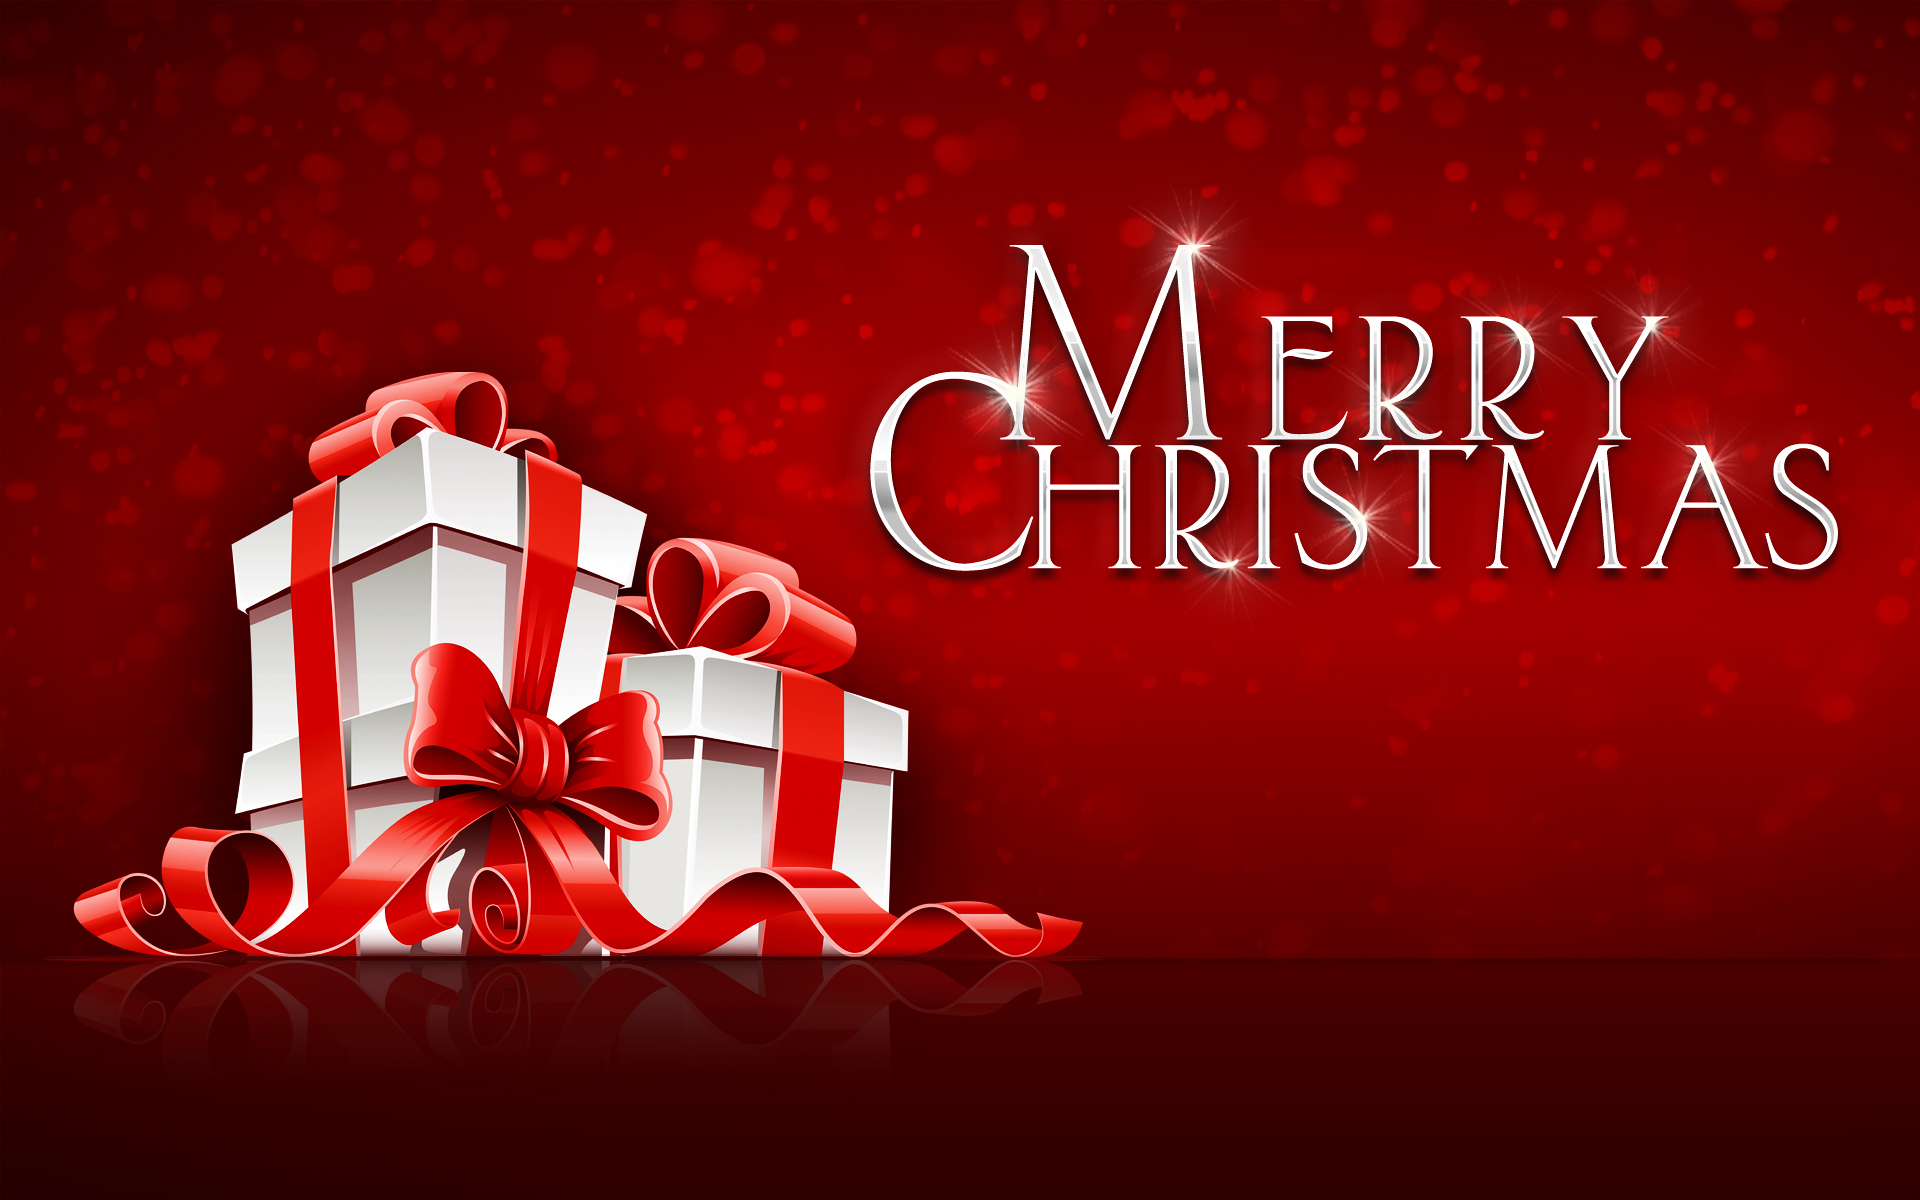 Happy Christmas Images Photos Wallpapers Pics 2015